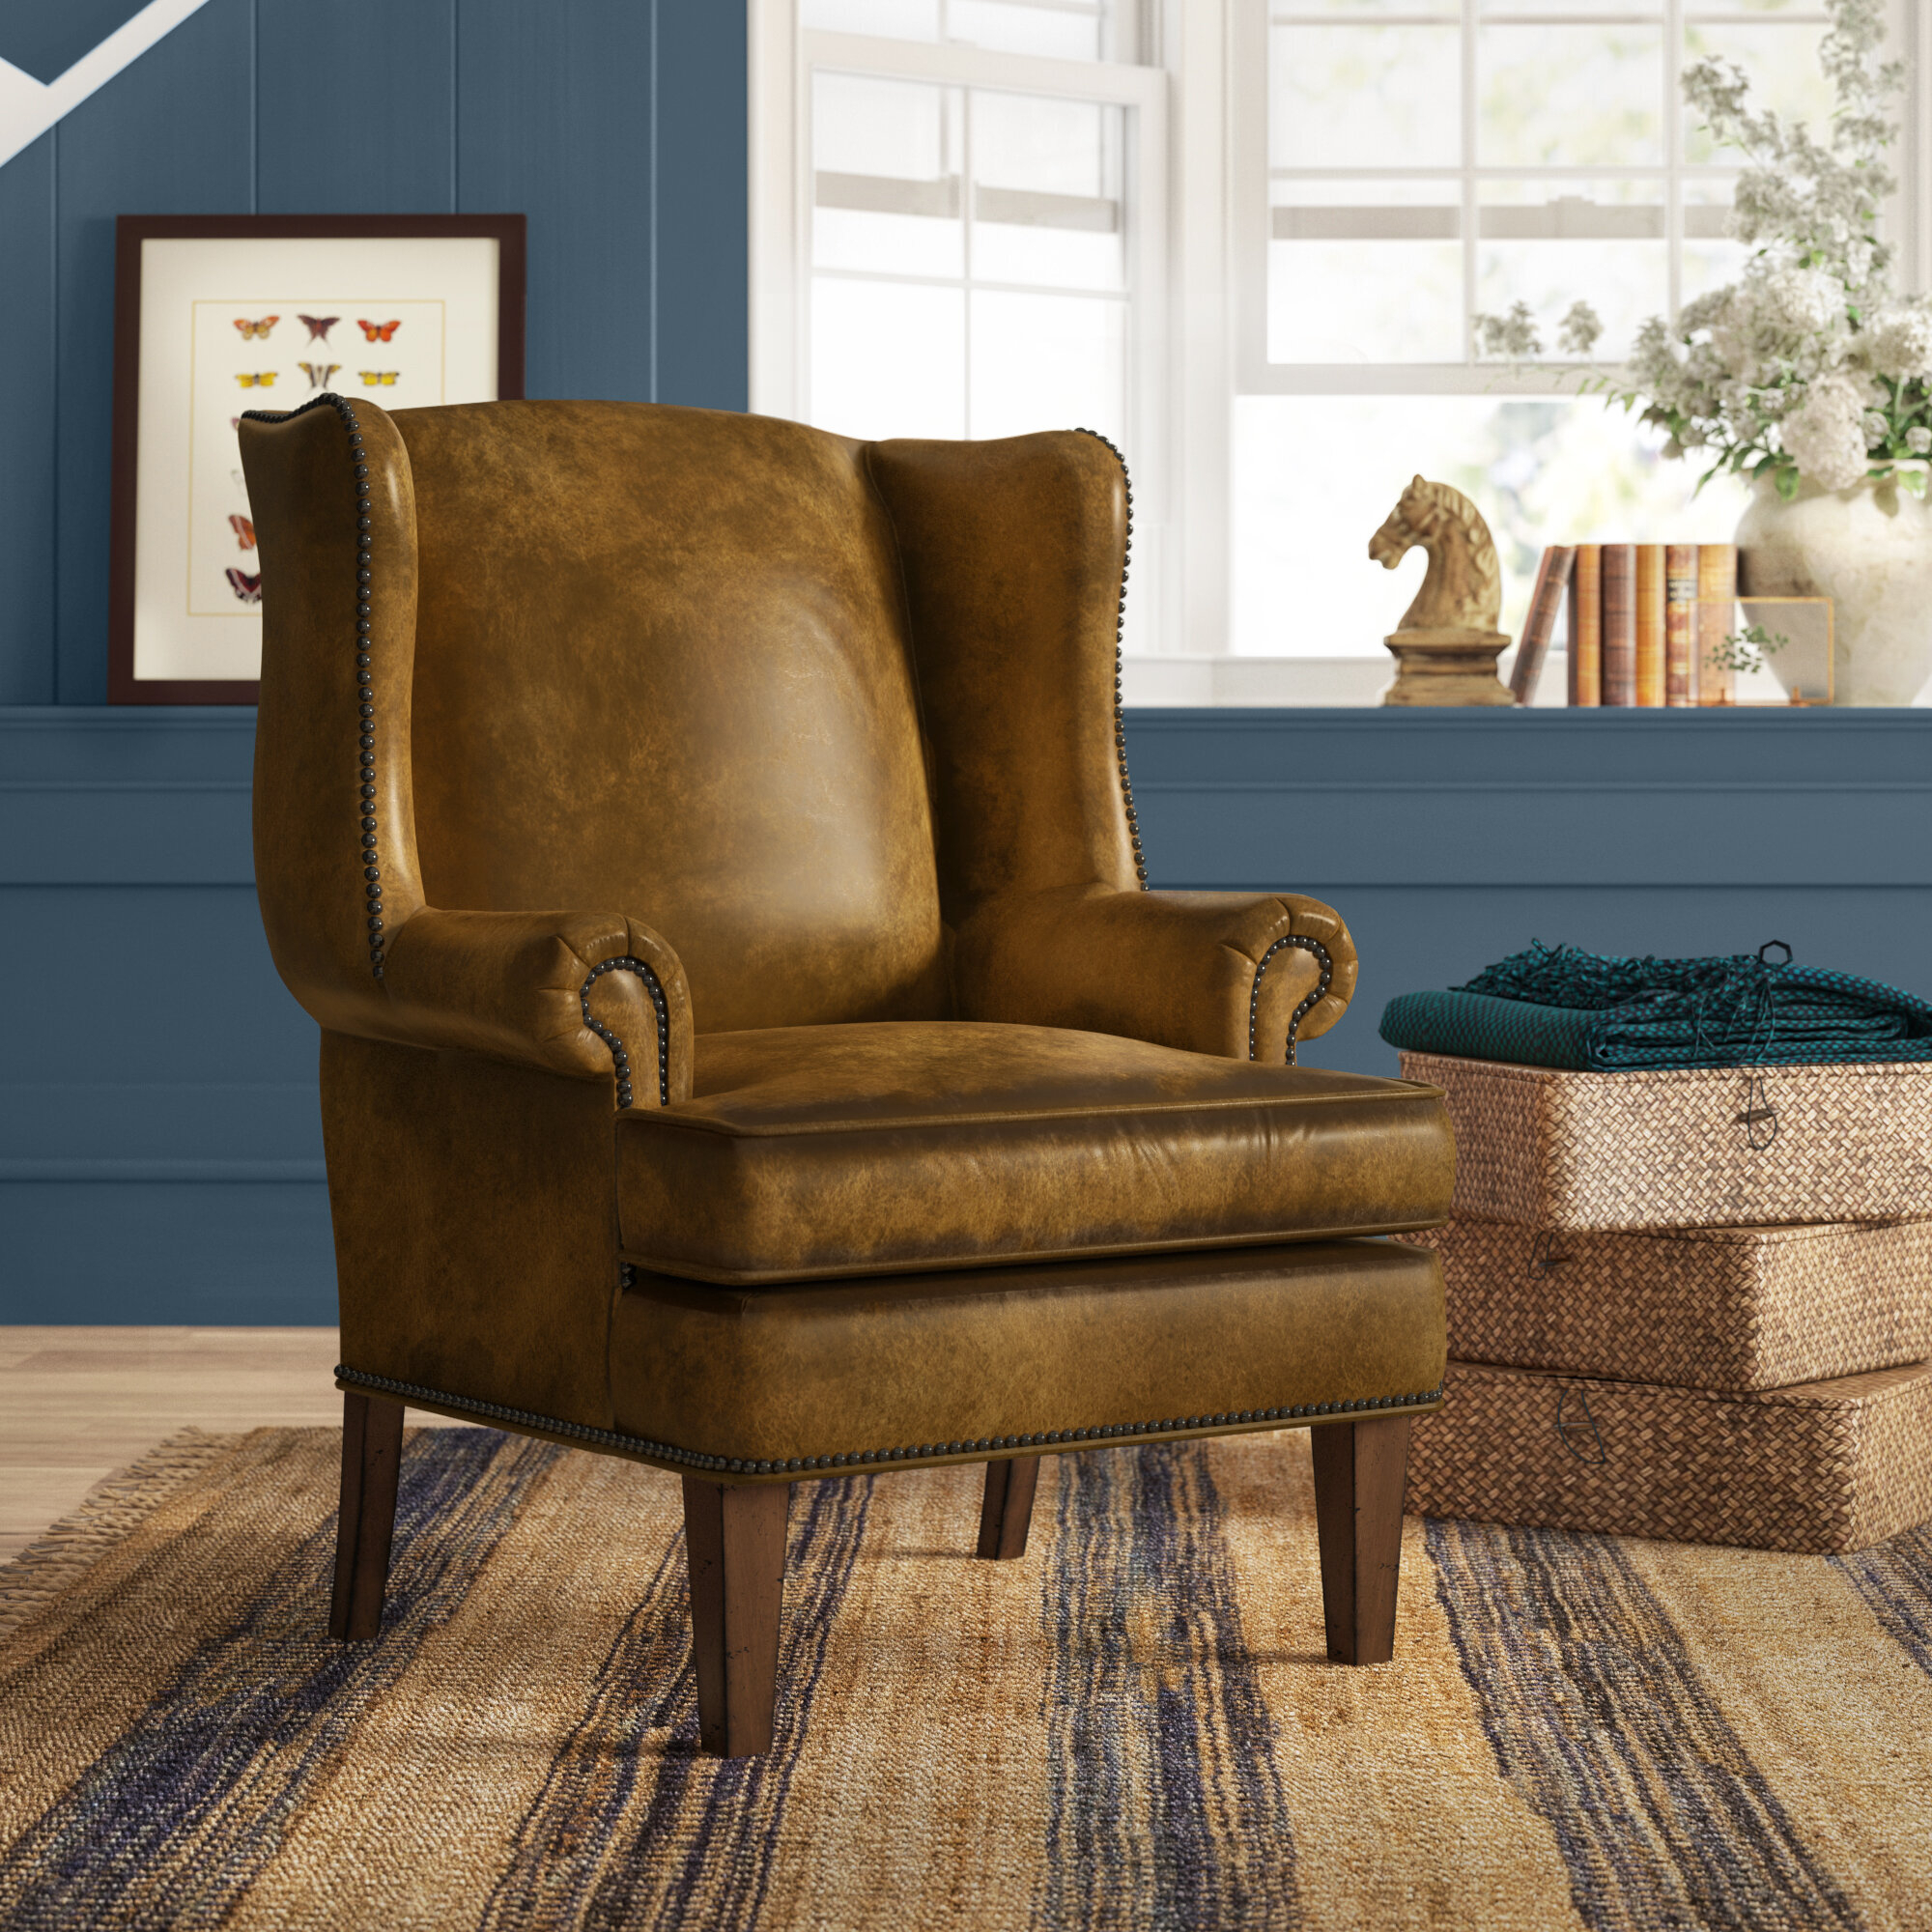 Leather Wingback Accent Chairs You'Ll Love In 2021 | Wayfair Regarding Gallin Wingback Chairs (View 6 of 15)